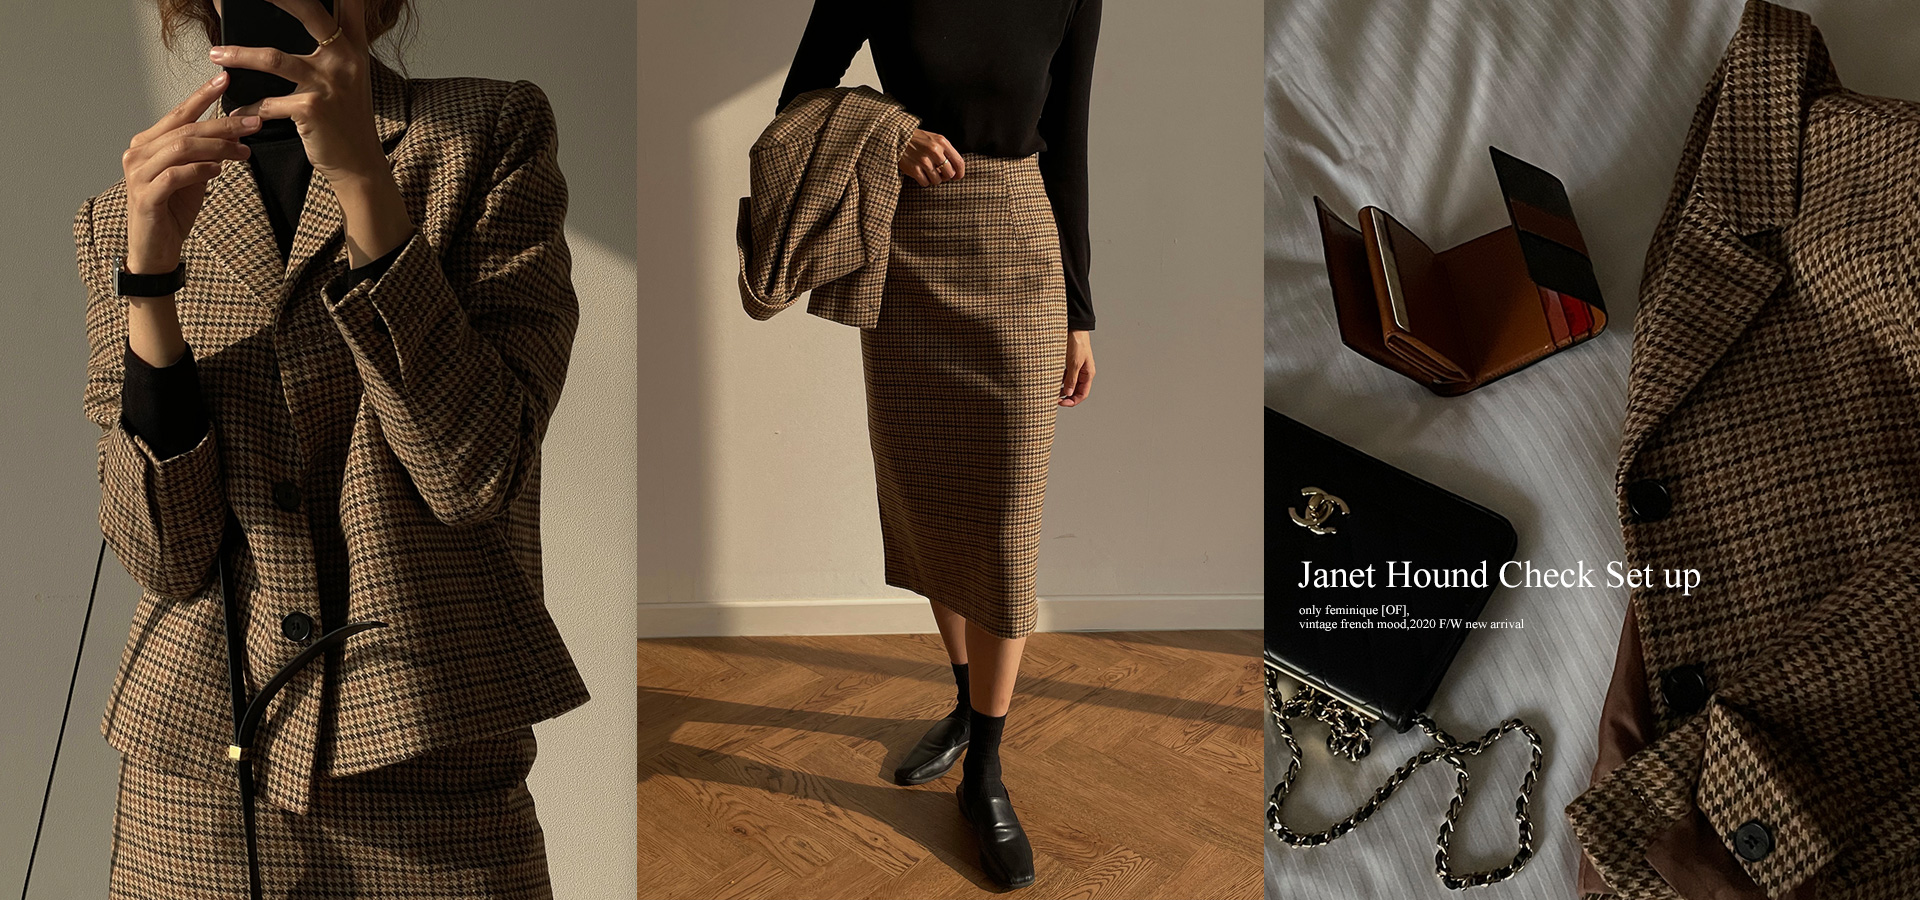 Janet Hound Check Jacket